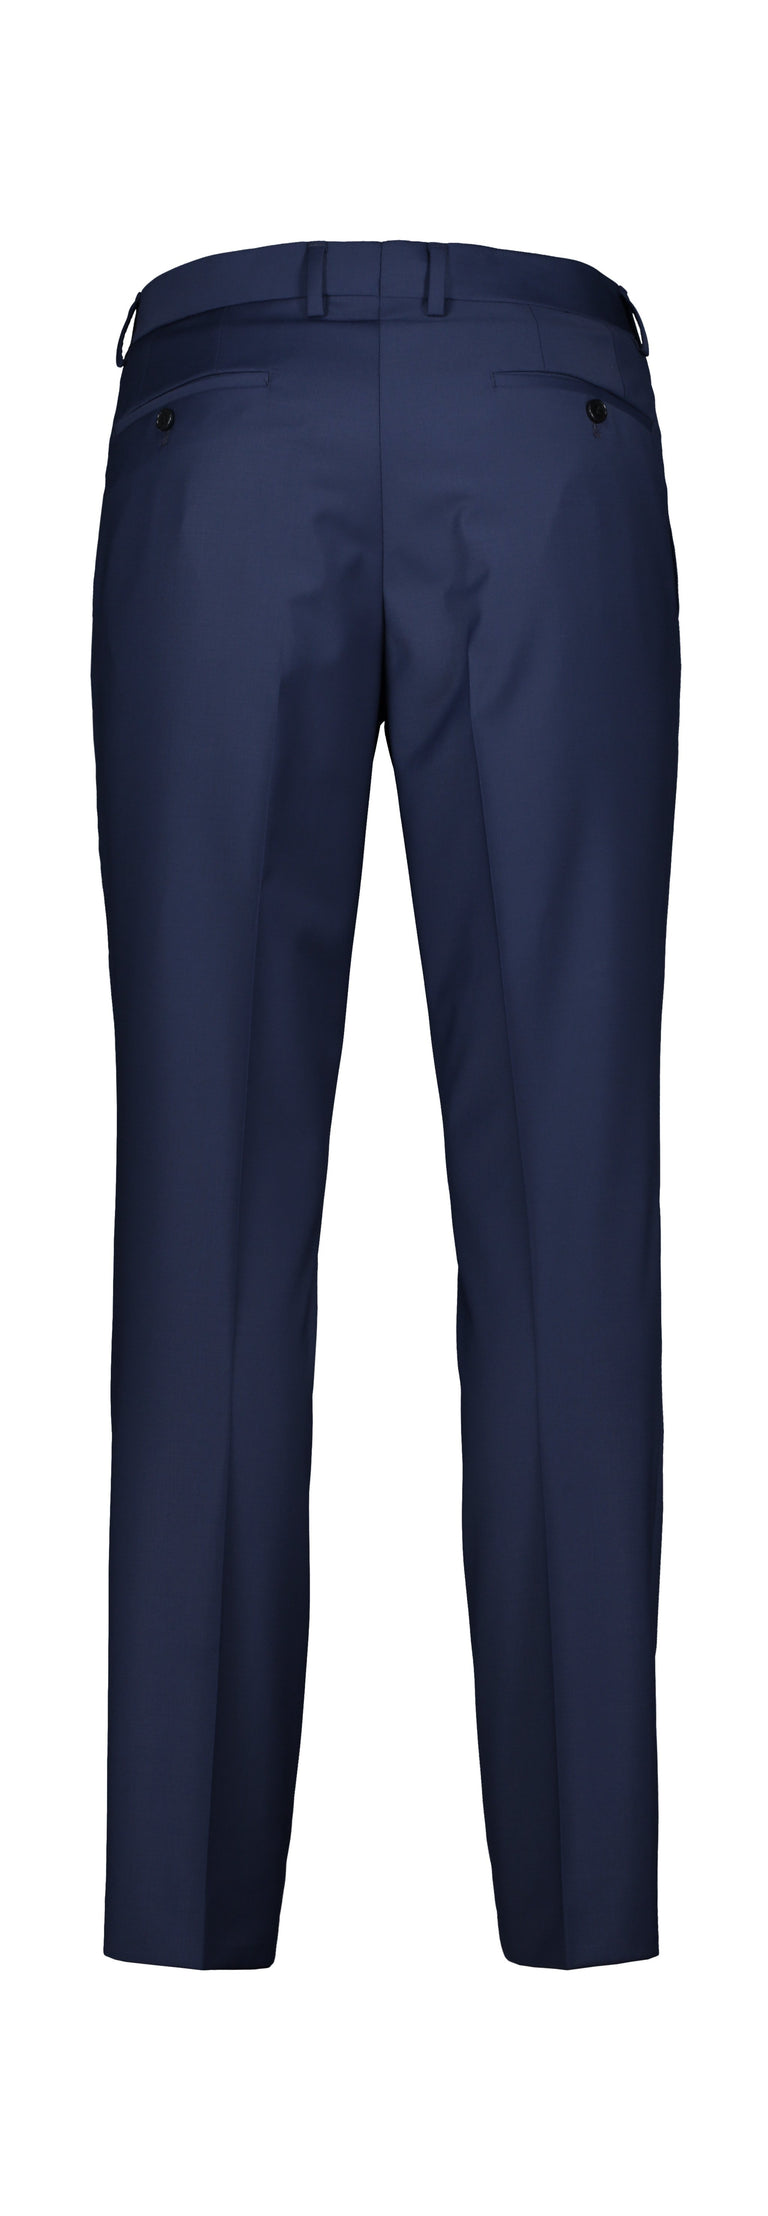 Extra slim fit trousers blue 3249 (4525871005758)